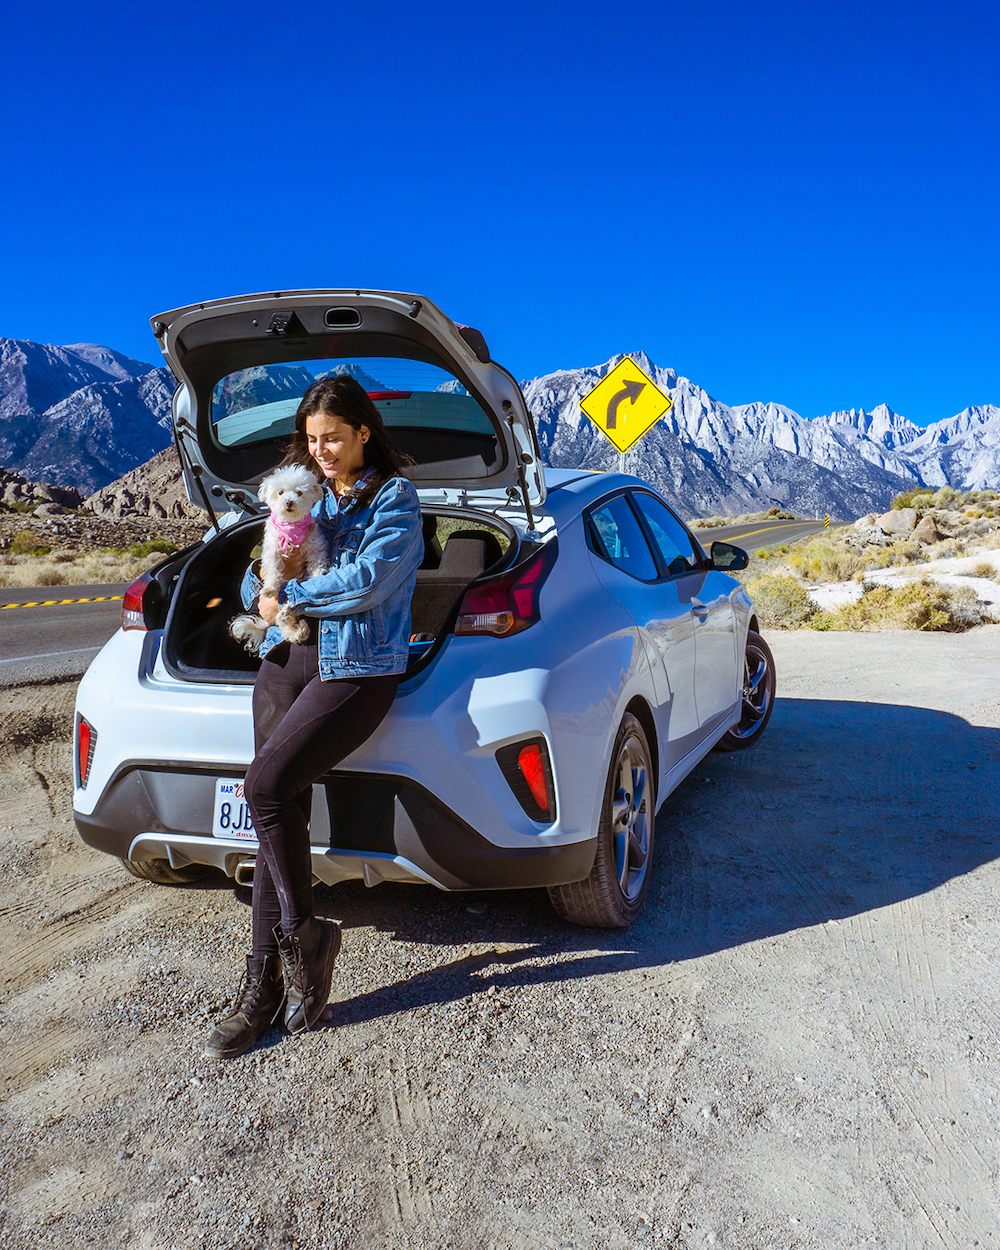 woman and dog parked on side of road with snow capped mountains in background